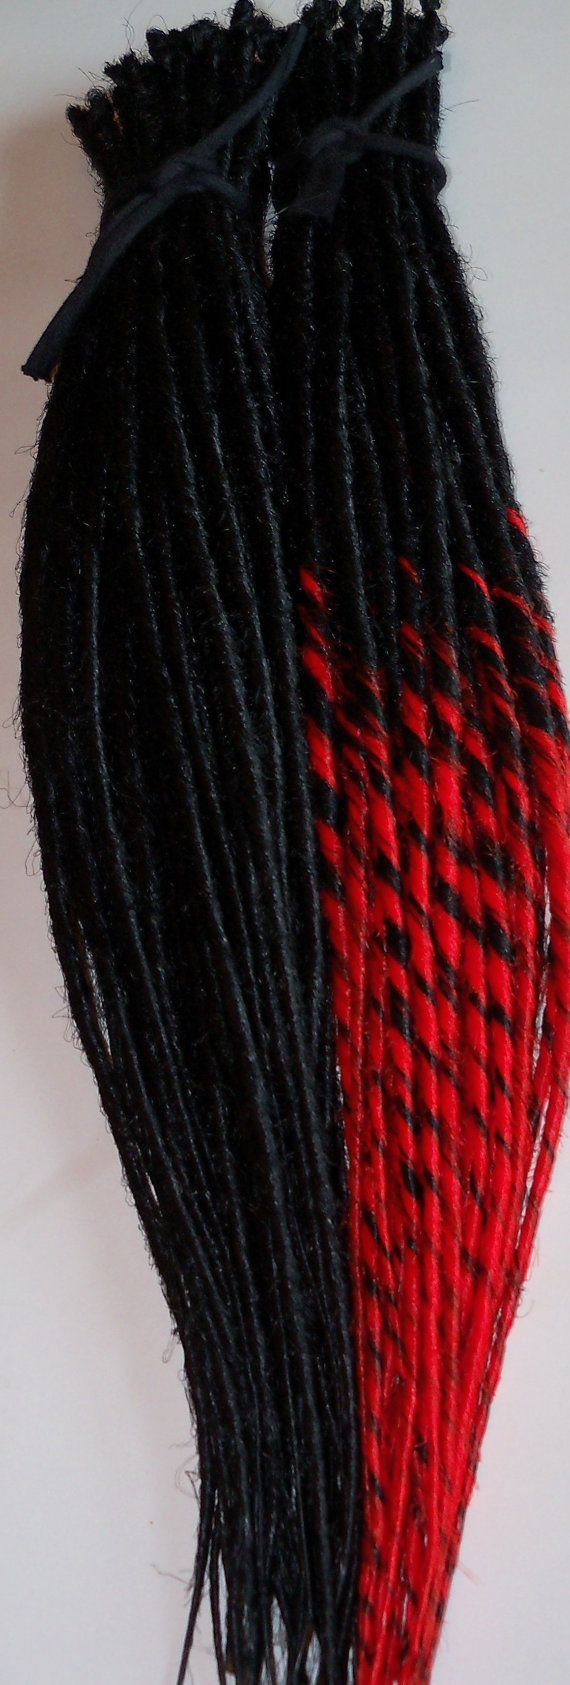 100 Synthetic Dreads Custom Hair Extensions Dreadlocks or Dread Falls